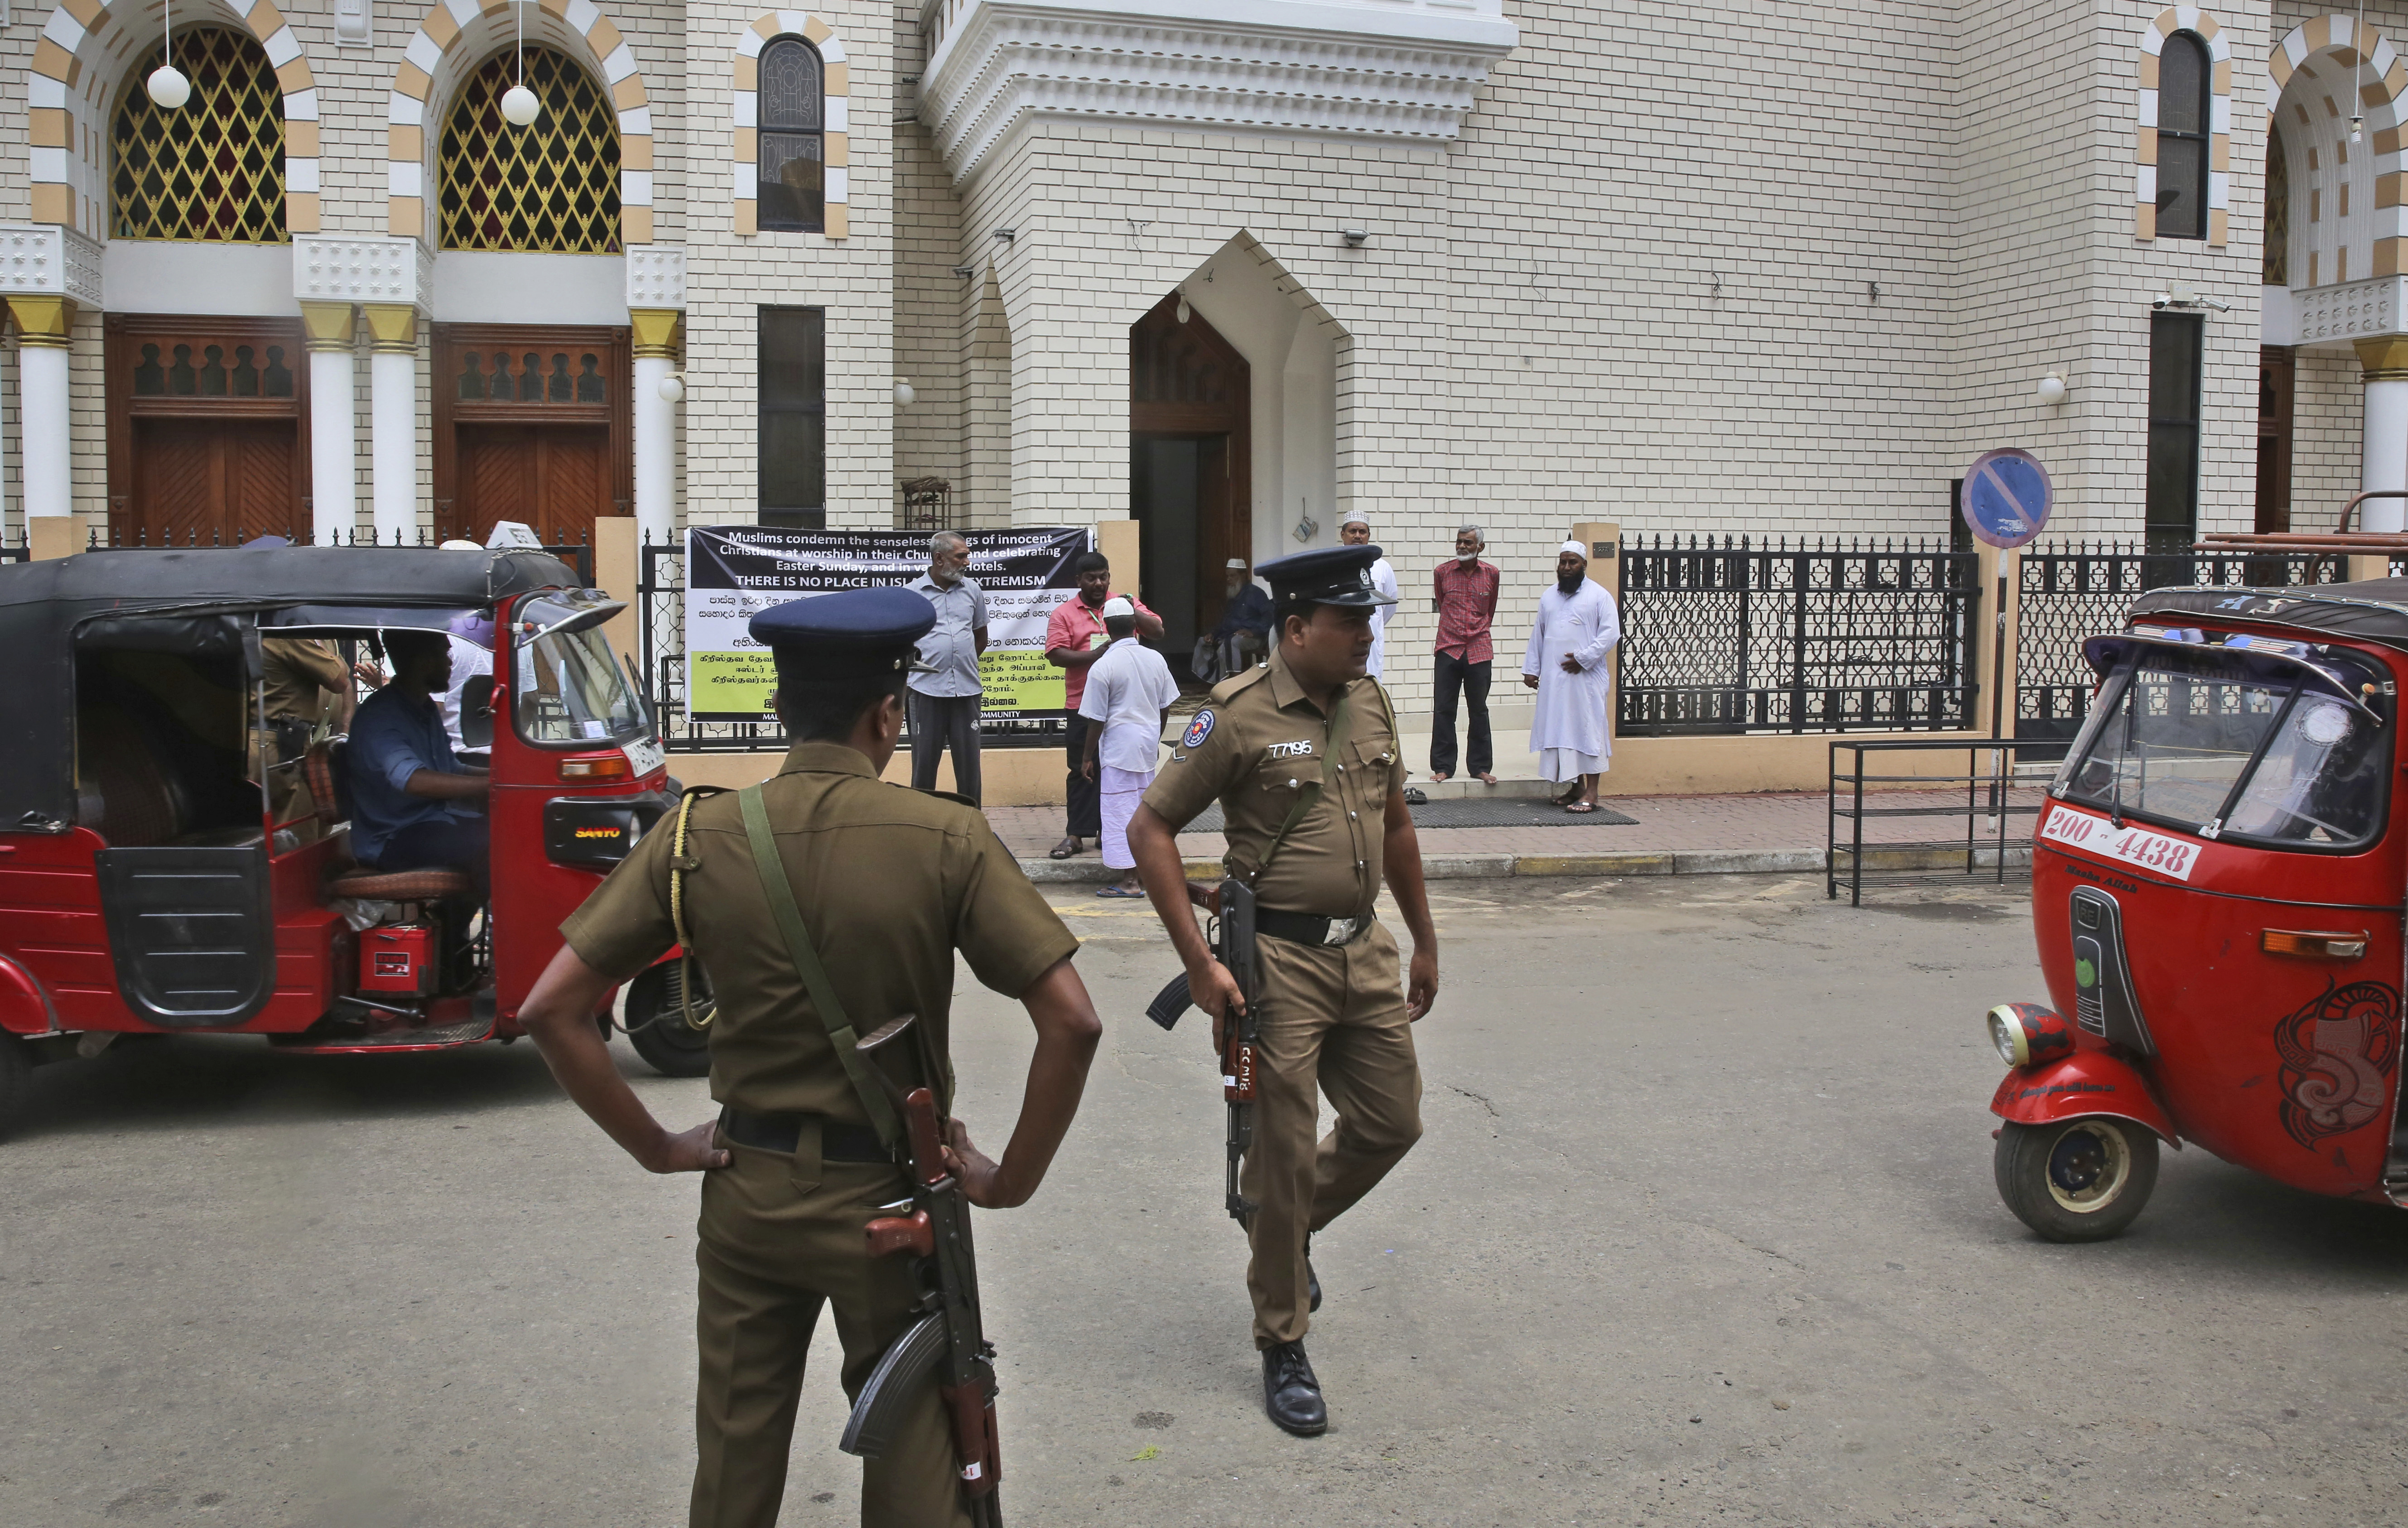 Sri Lankan policemen stand guard outside a mosque before the Friday prayers, in Colombo, Sri Lanka, April 26, 2019.